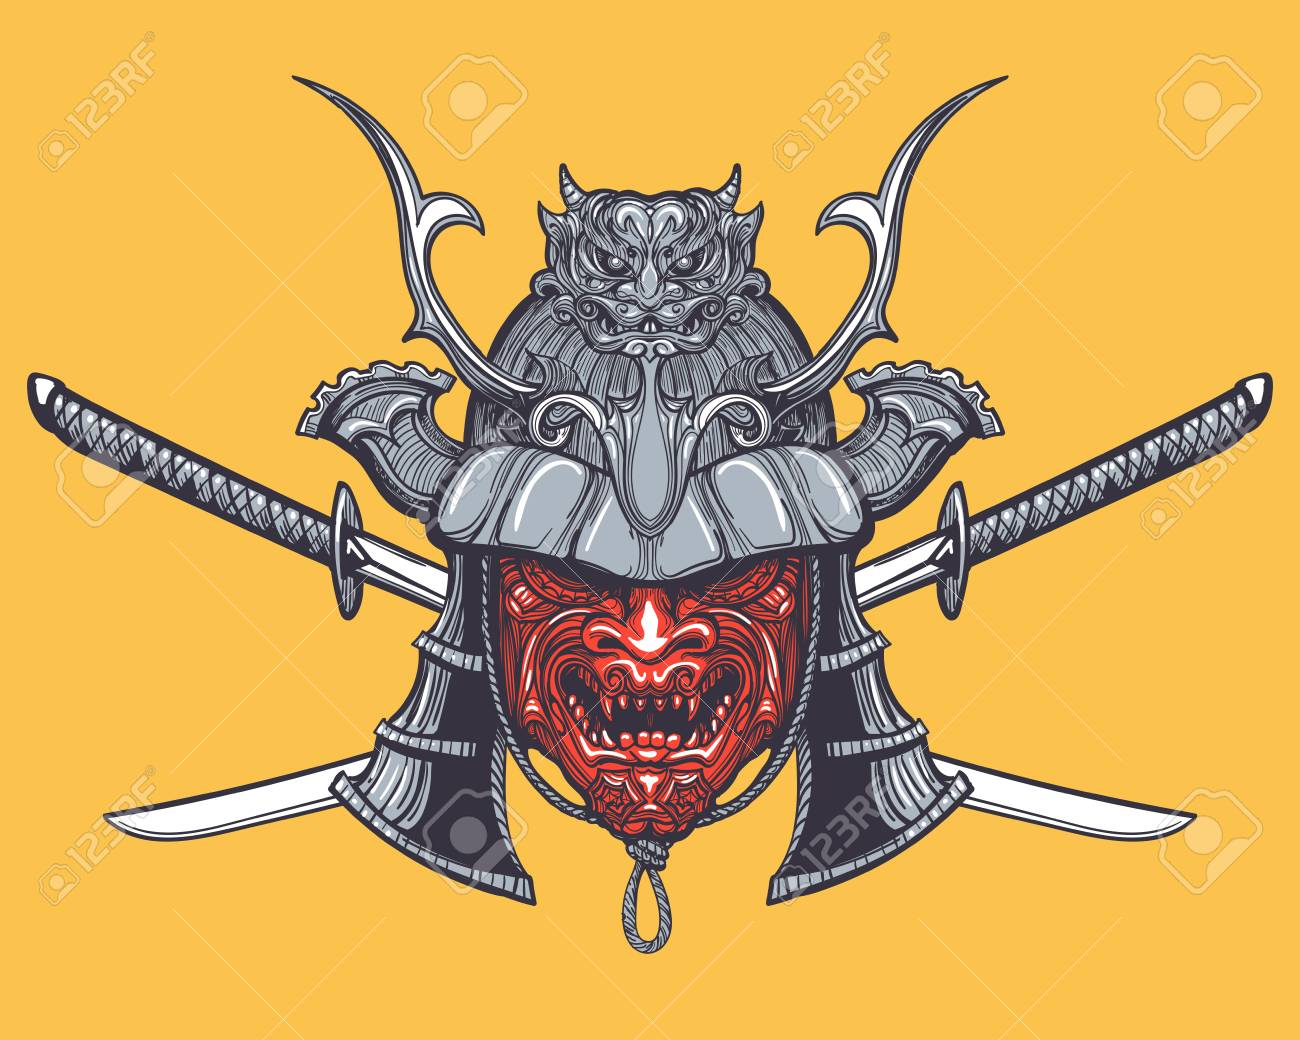 Hand Drawn Japanese Samurai Mask With Two Crossed Swords Vector